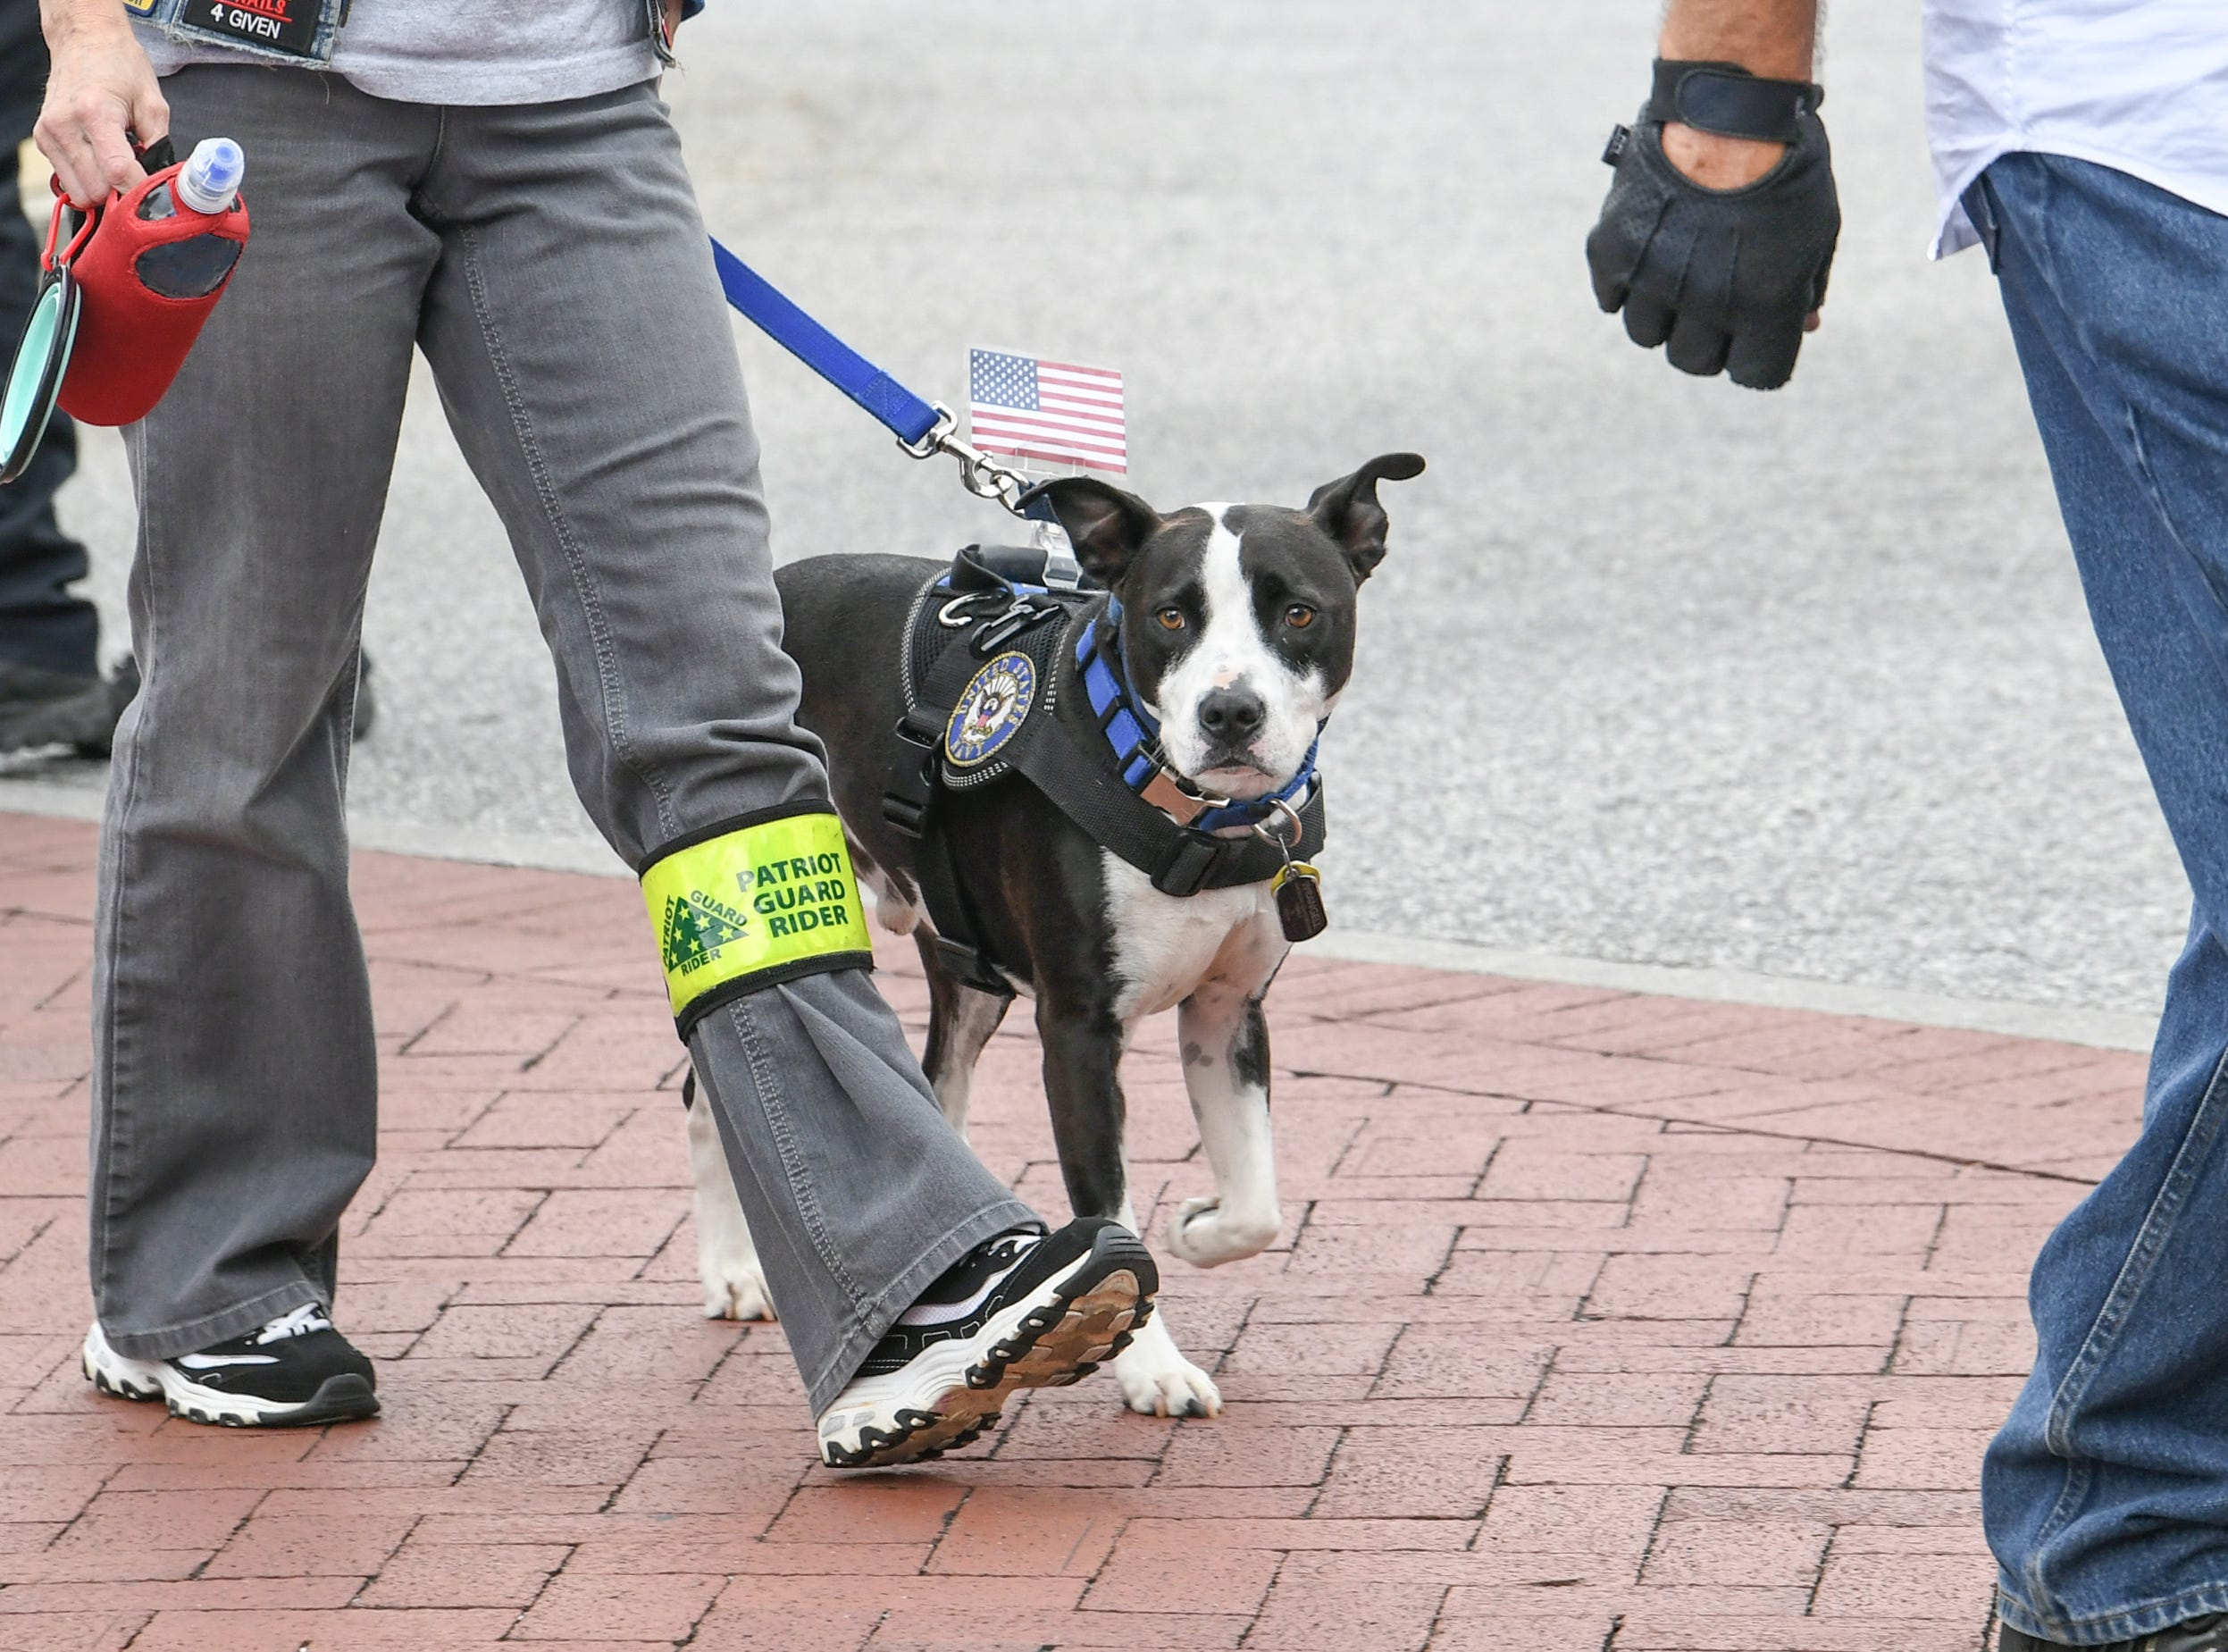 Kim Woods, retired Navy veteran, walks with PTSD dog Wrangell and others with the Patriot Guard to the 2019 Peace Officer Memorial Service Wednesday May 15, 2019, in front of the Anderson County courthouse. People attended to help honor the lives of officers lost in the line of duty.